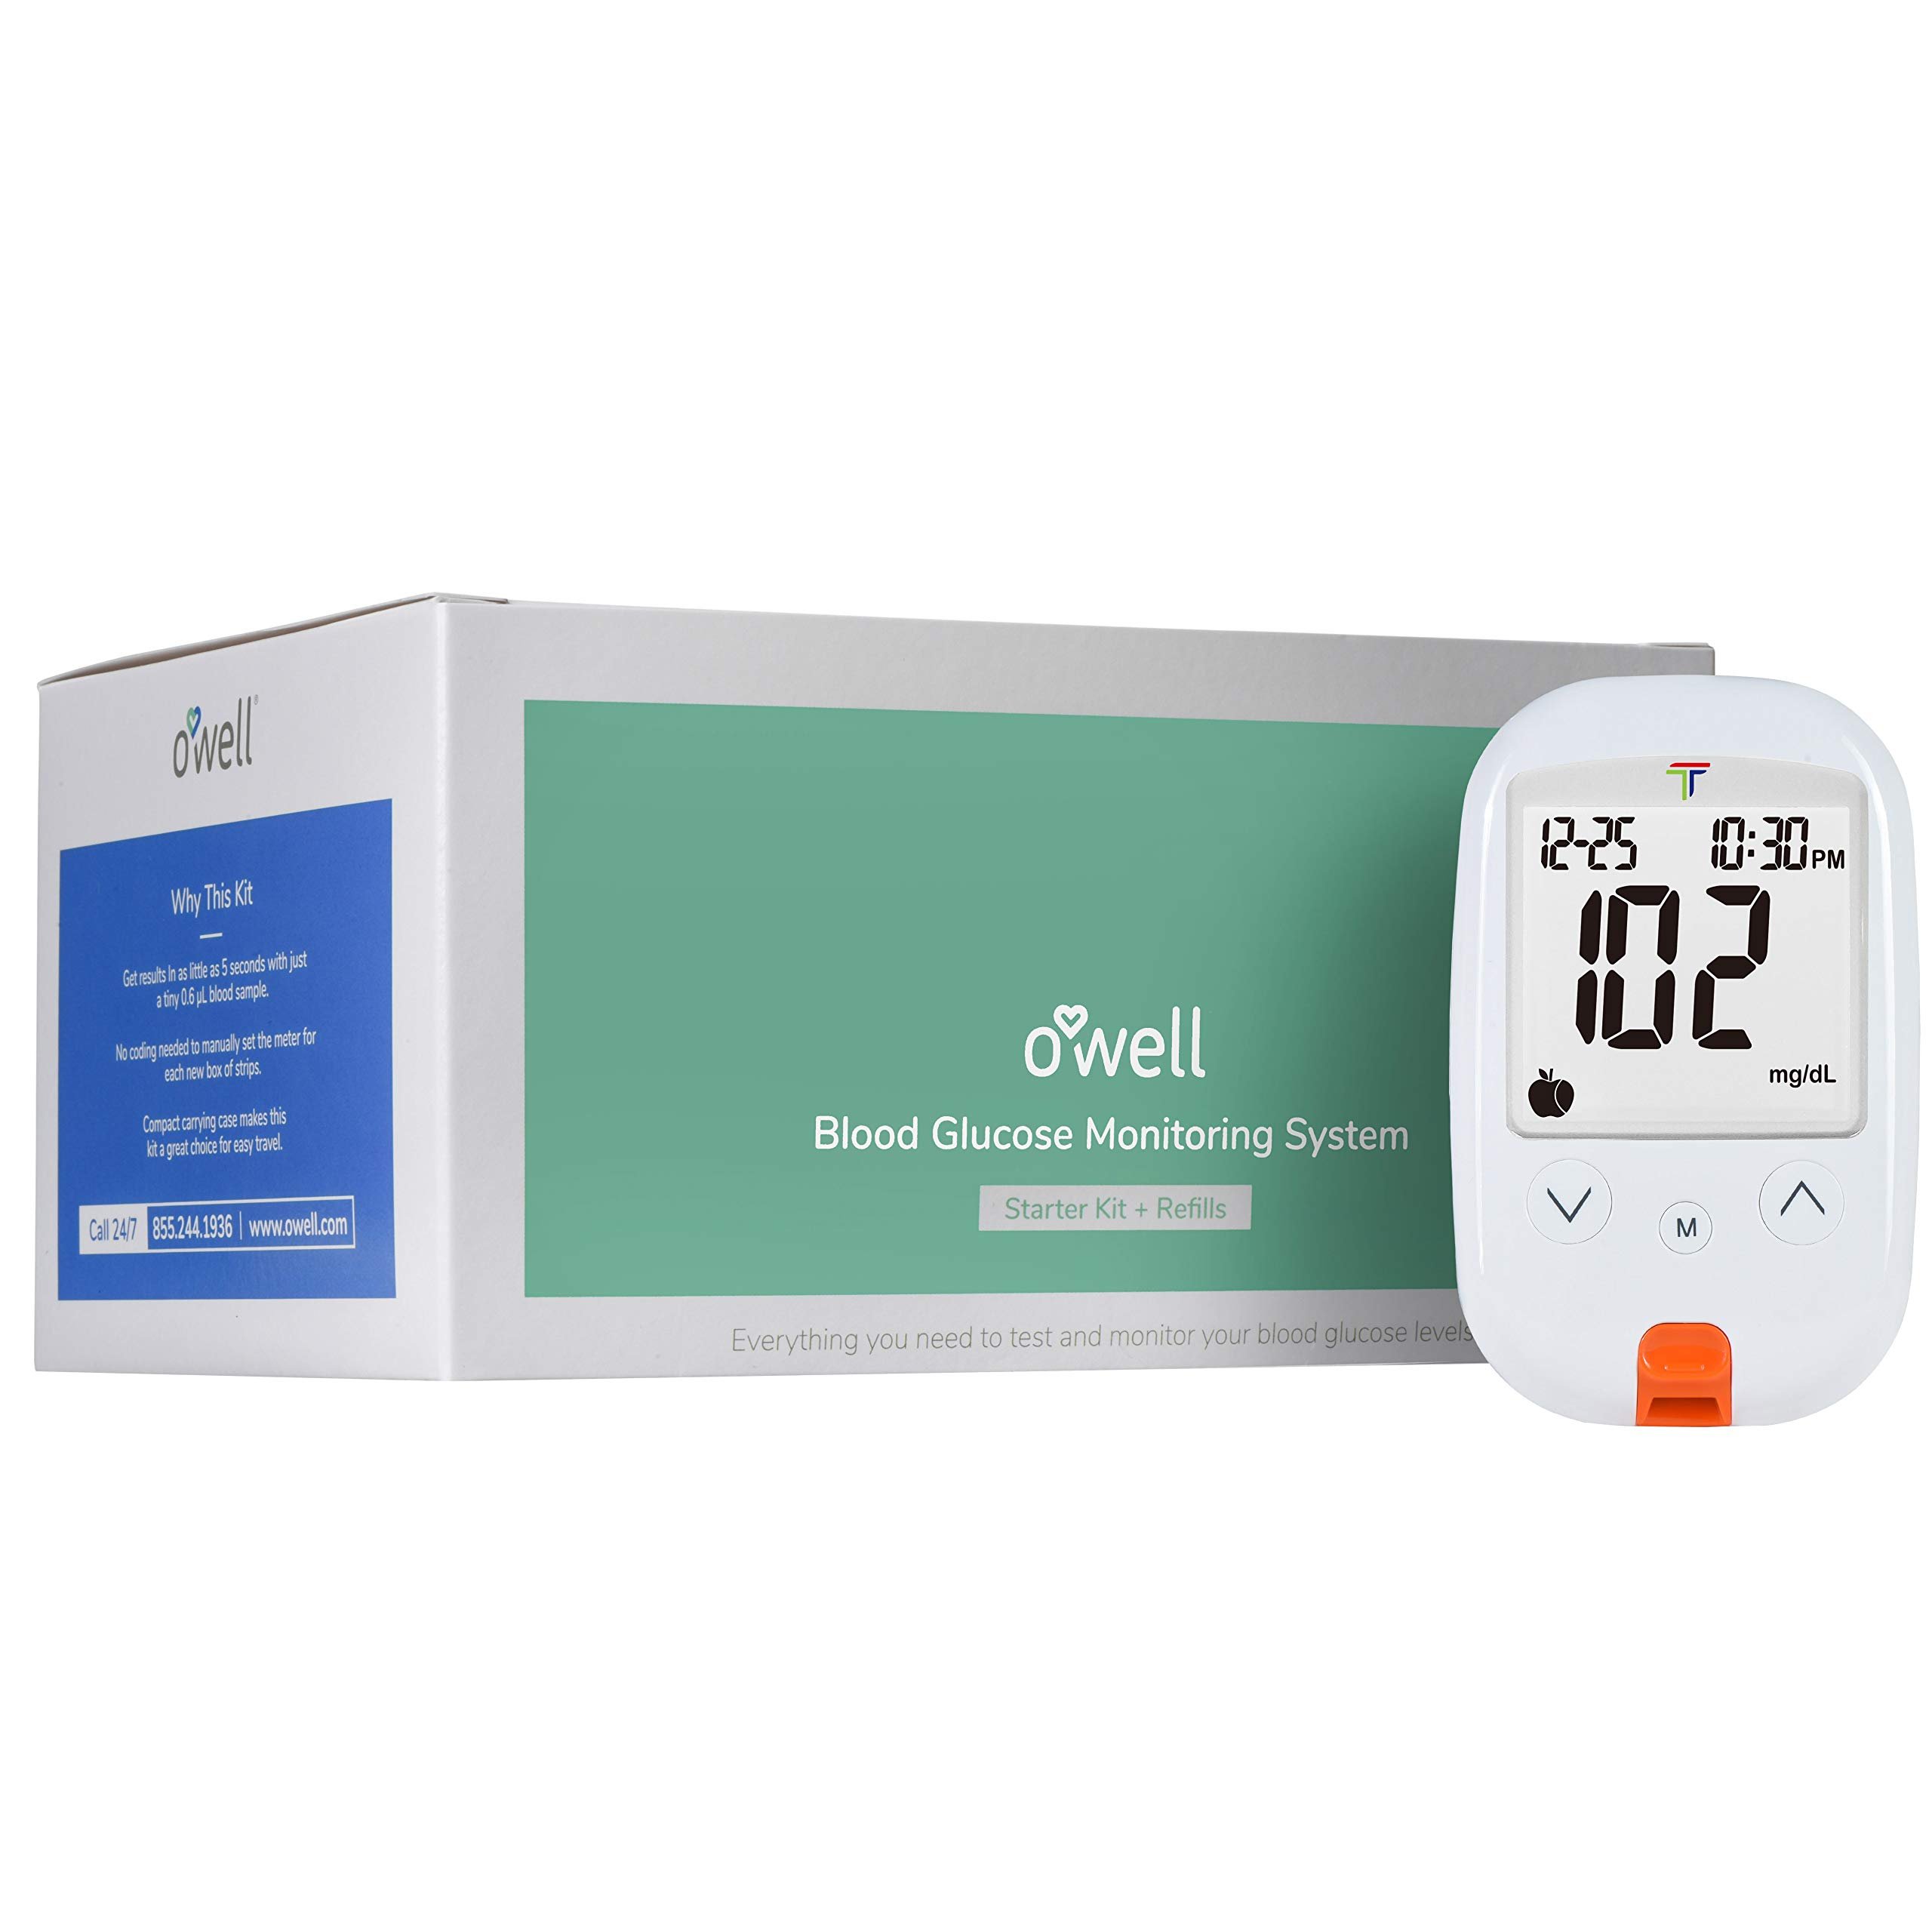 O'WELL Tyson Blood Glucose Monitoring Kit | Starter Kit + 300 Refills | Tyson HT100 Meter, 300 Test Strips, 300 Lancets, Lancing Device, Control Solution, Log Book, Manuals and Carry Case